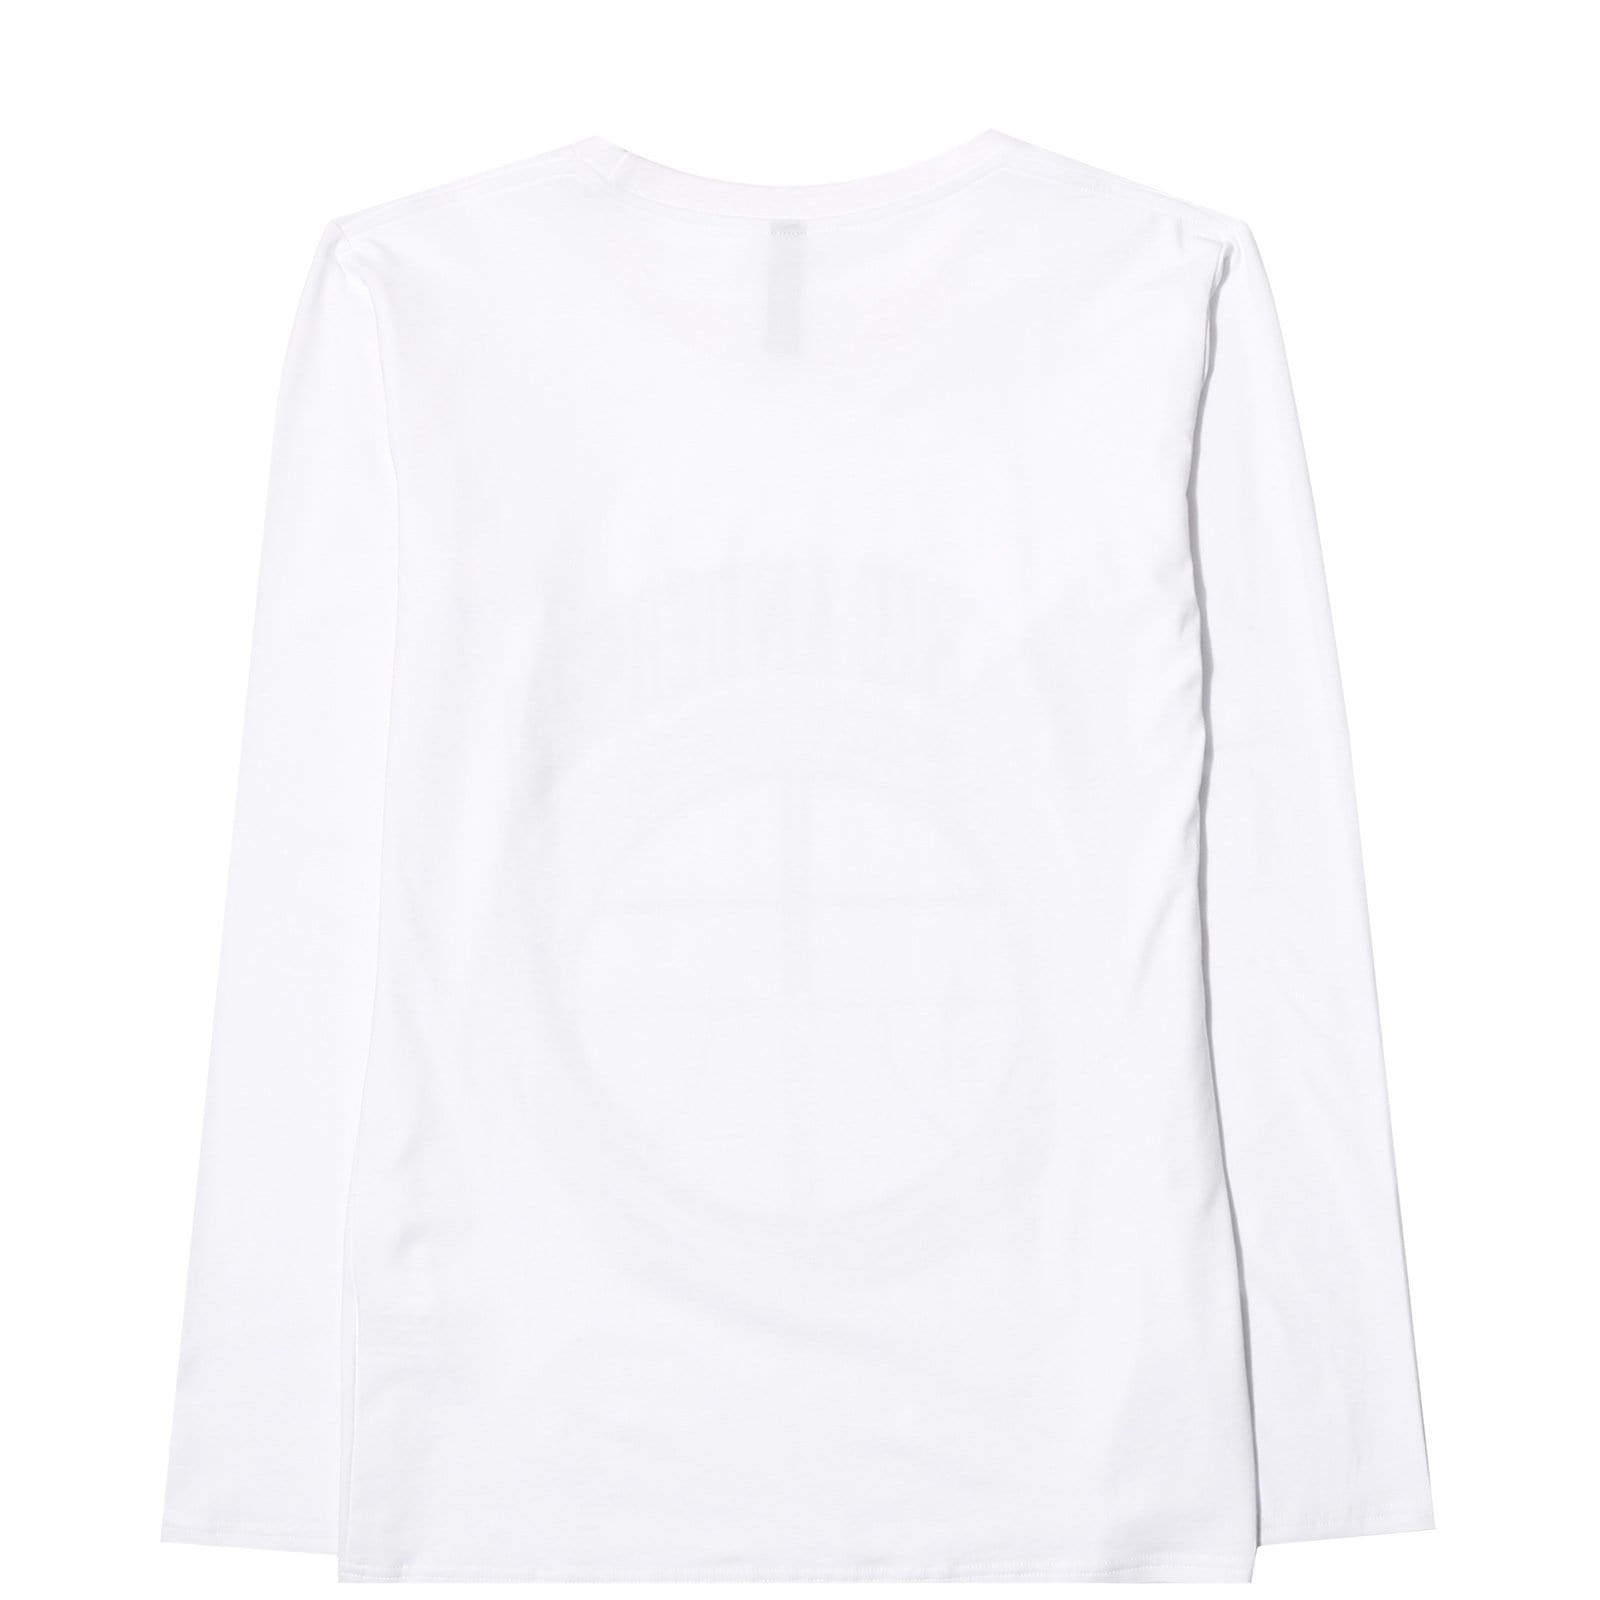 Astrid Andersen ESSENTIAL LONG SLEEVE White